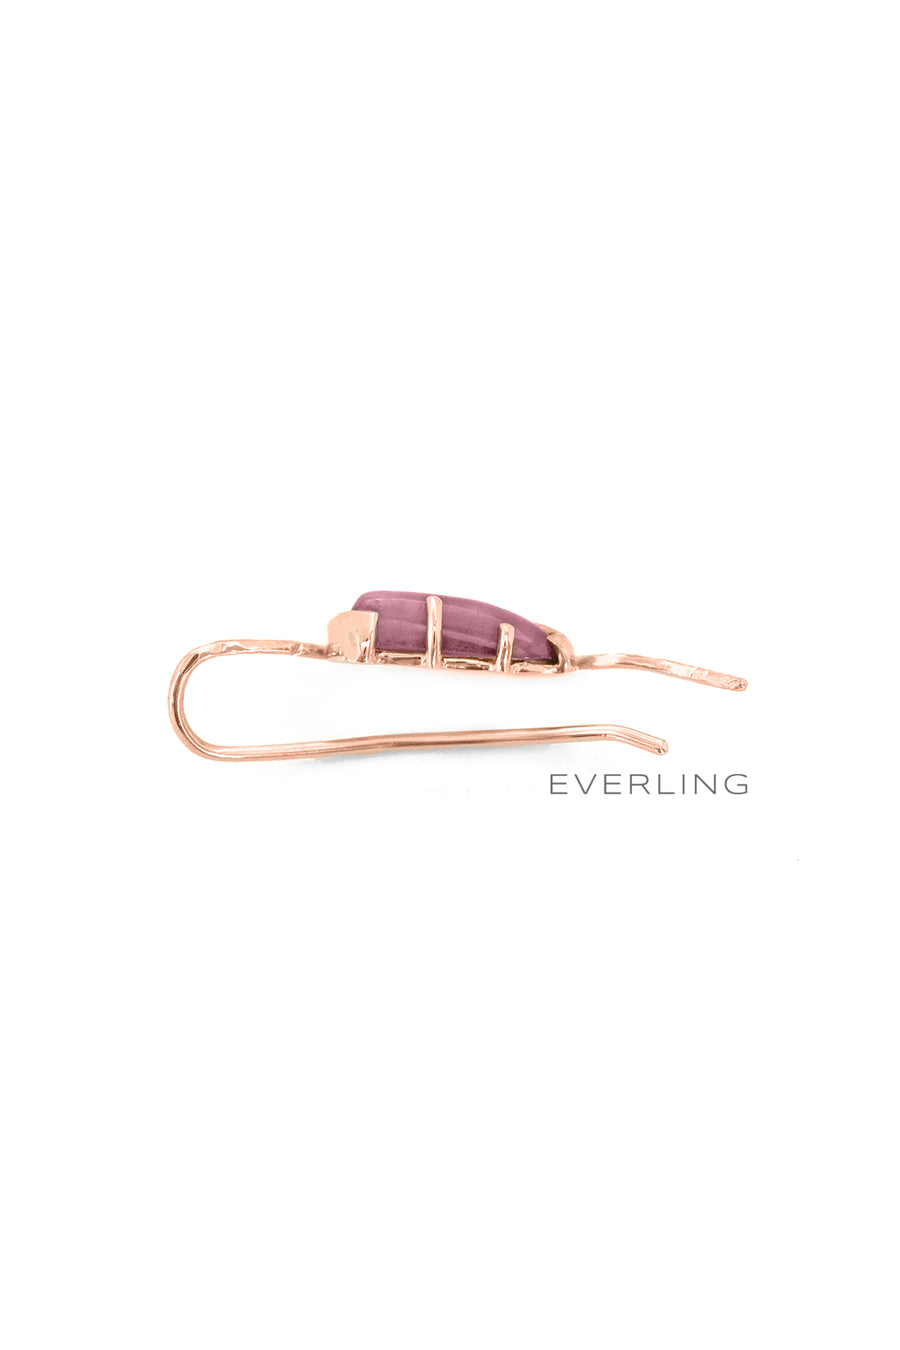 Detail- Recycled 14K Rose Gold and Rhodolite Garnet Ear Climber. #earclimber #designerjewelry www.everlingjewelry.com